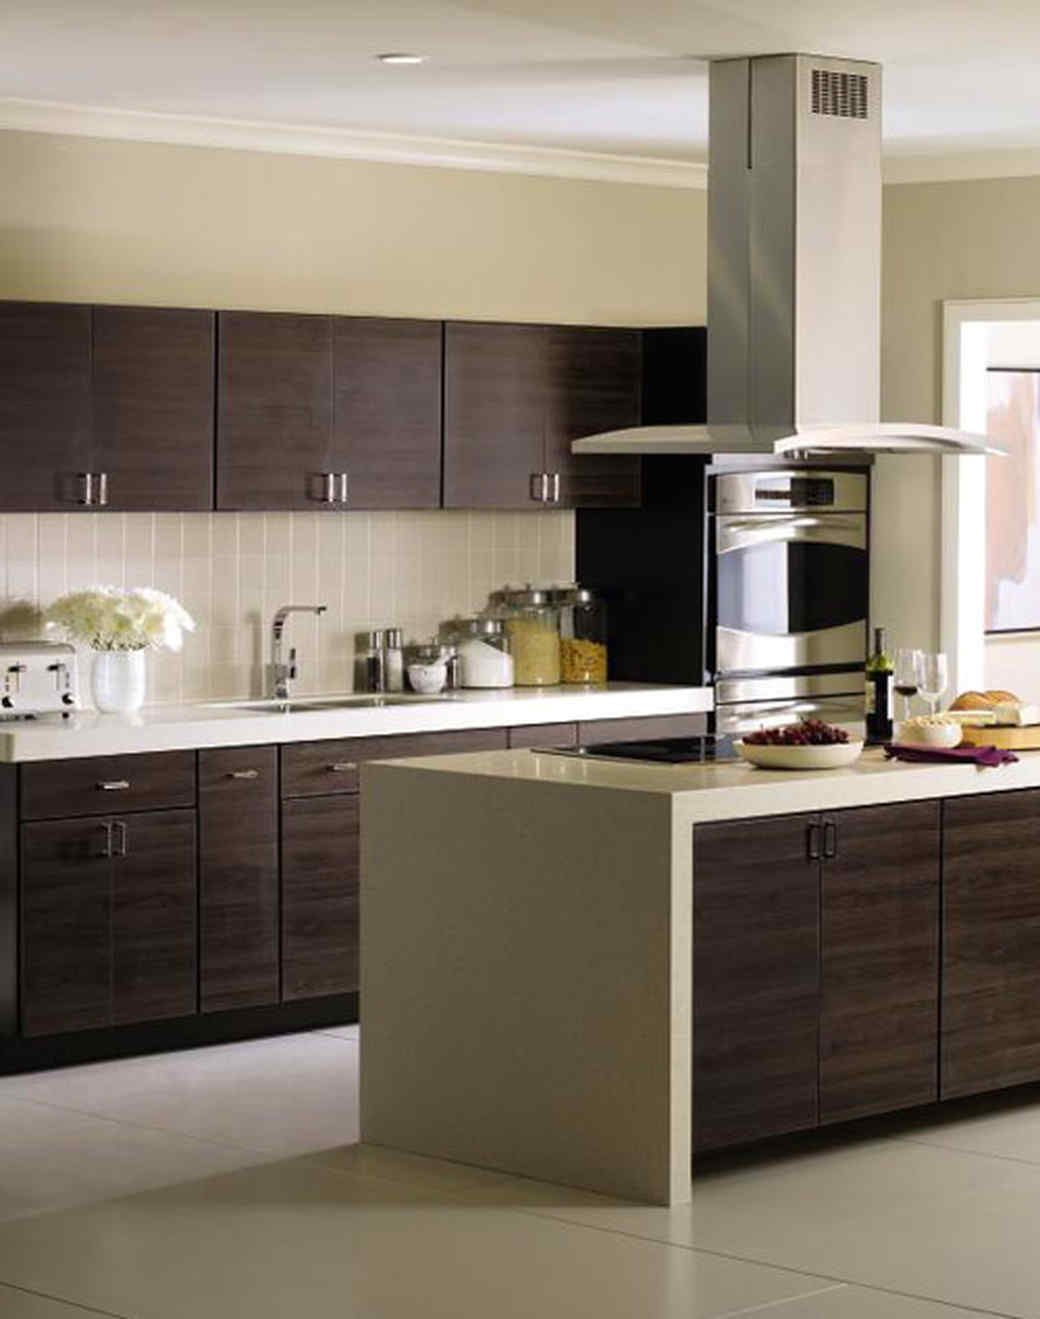 Martha Stewart Living Kitchen Designs From The Home Depot Martha Stewart Living In 2020 Martha Stewart Living Kitchen Cost Of Kitchen Cabinets Kitchen Cabinet Styles